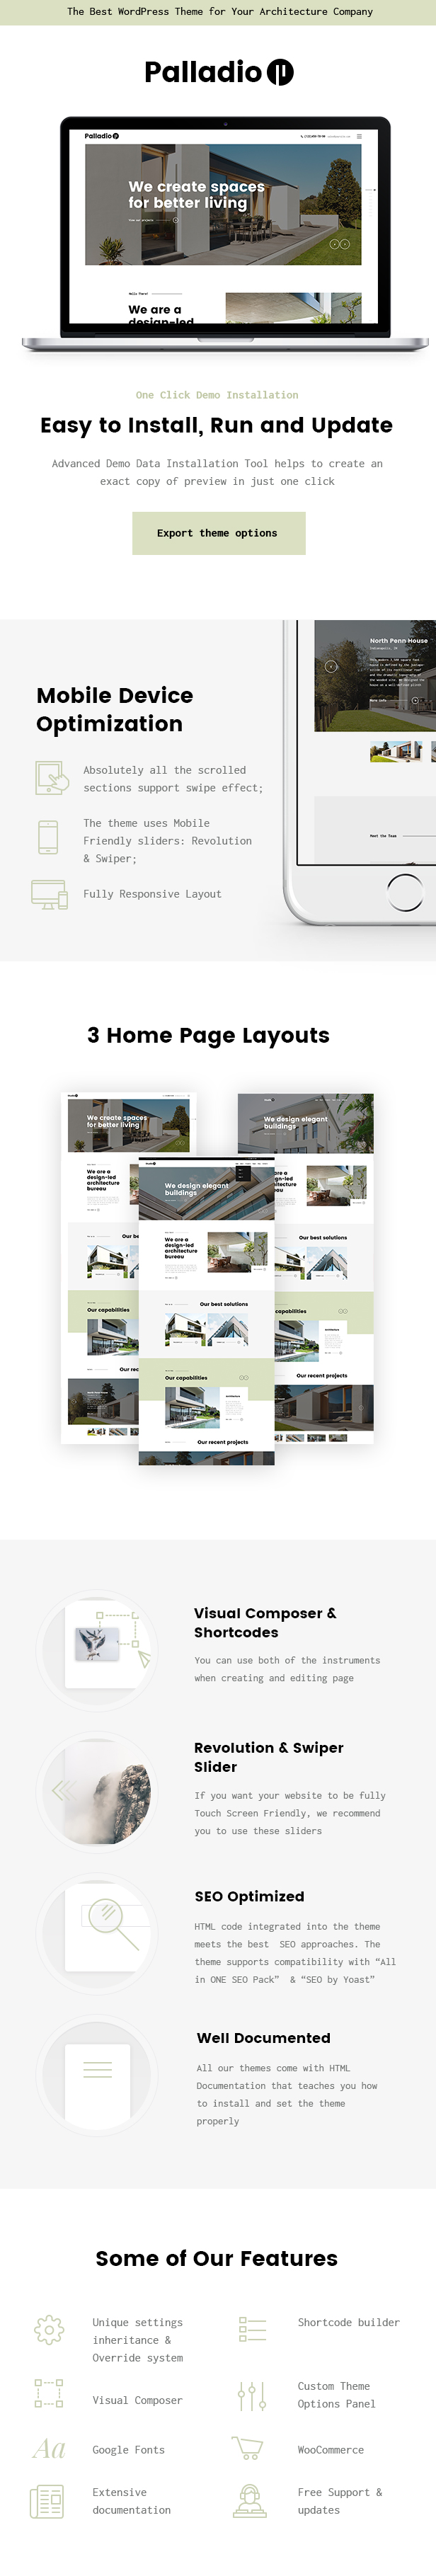 Palladio | Interior Design & Architecture WordPress Theme - 2